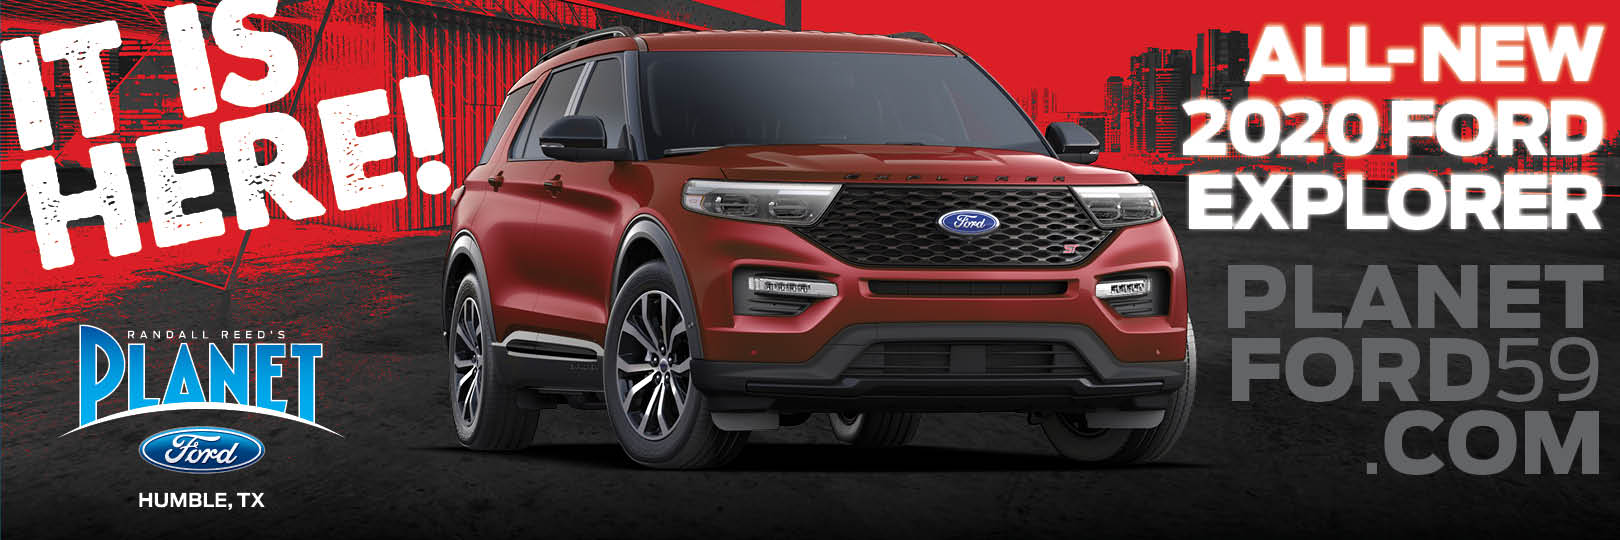 2020 Explorer at Planet Ford 59